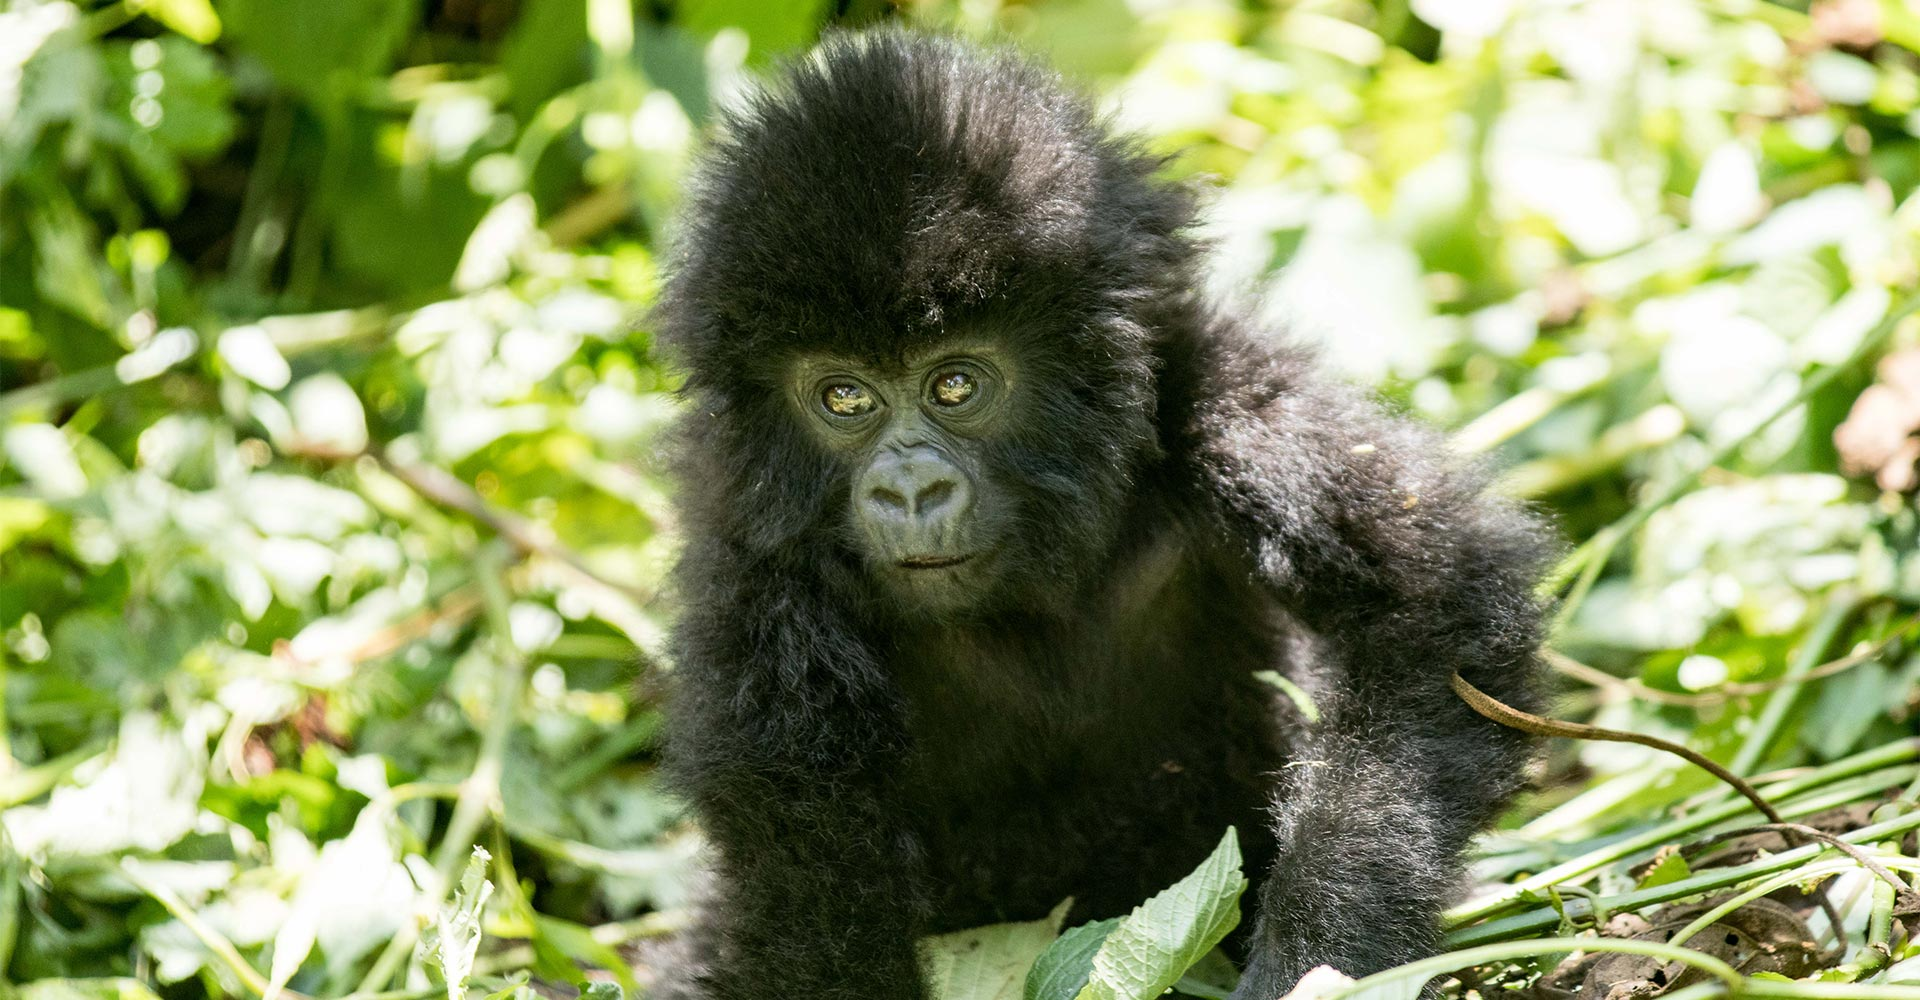 On the hunt for mountain gorillas - Alice Peretie - Conjour Wildlife Photography Feature - African Gorillas - Feature